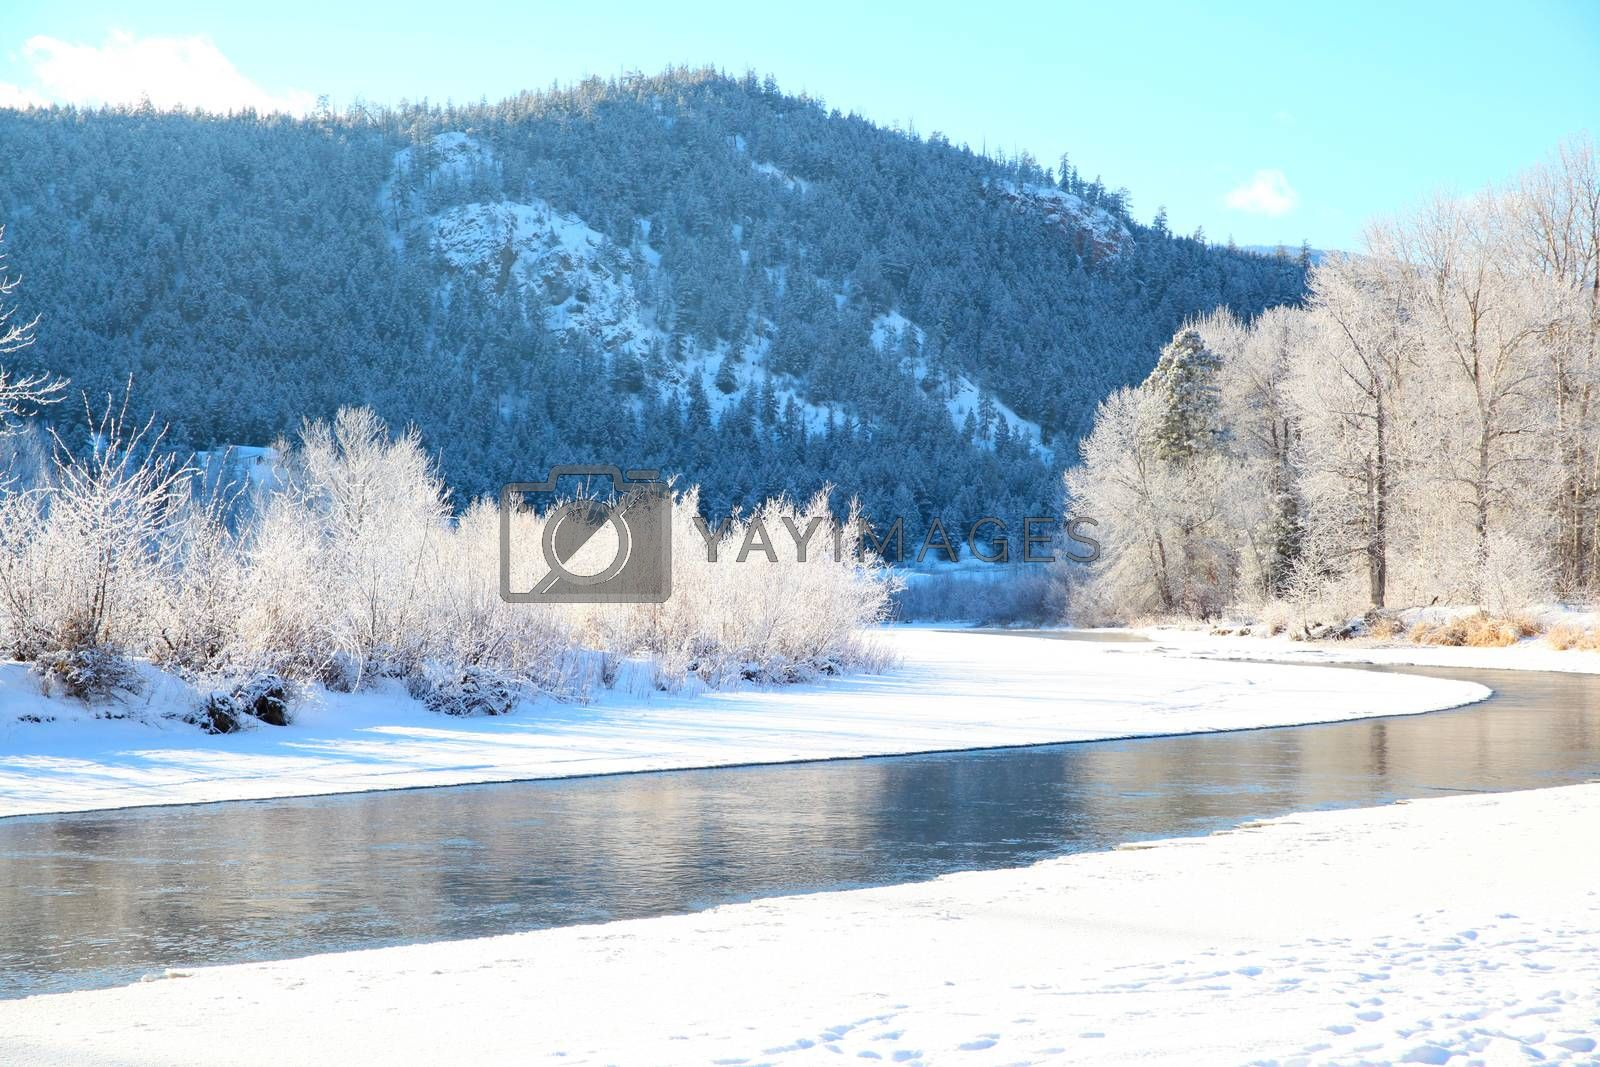 Frozen river with trees and mountain in the background